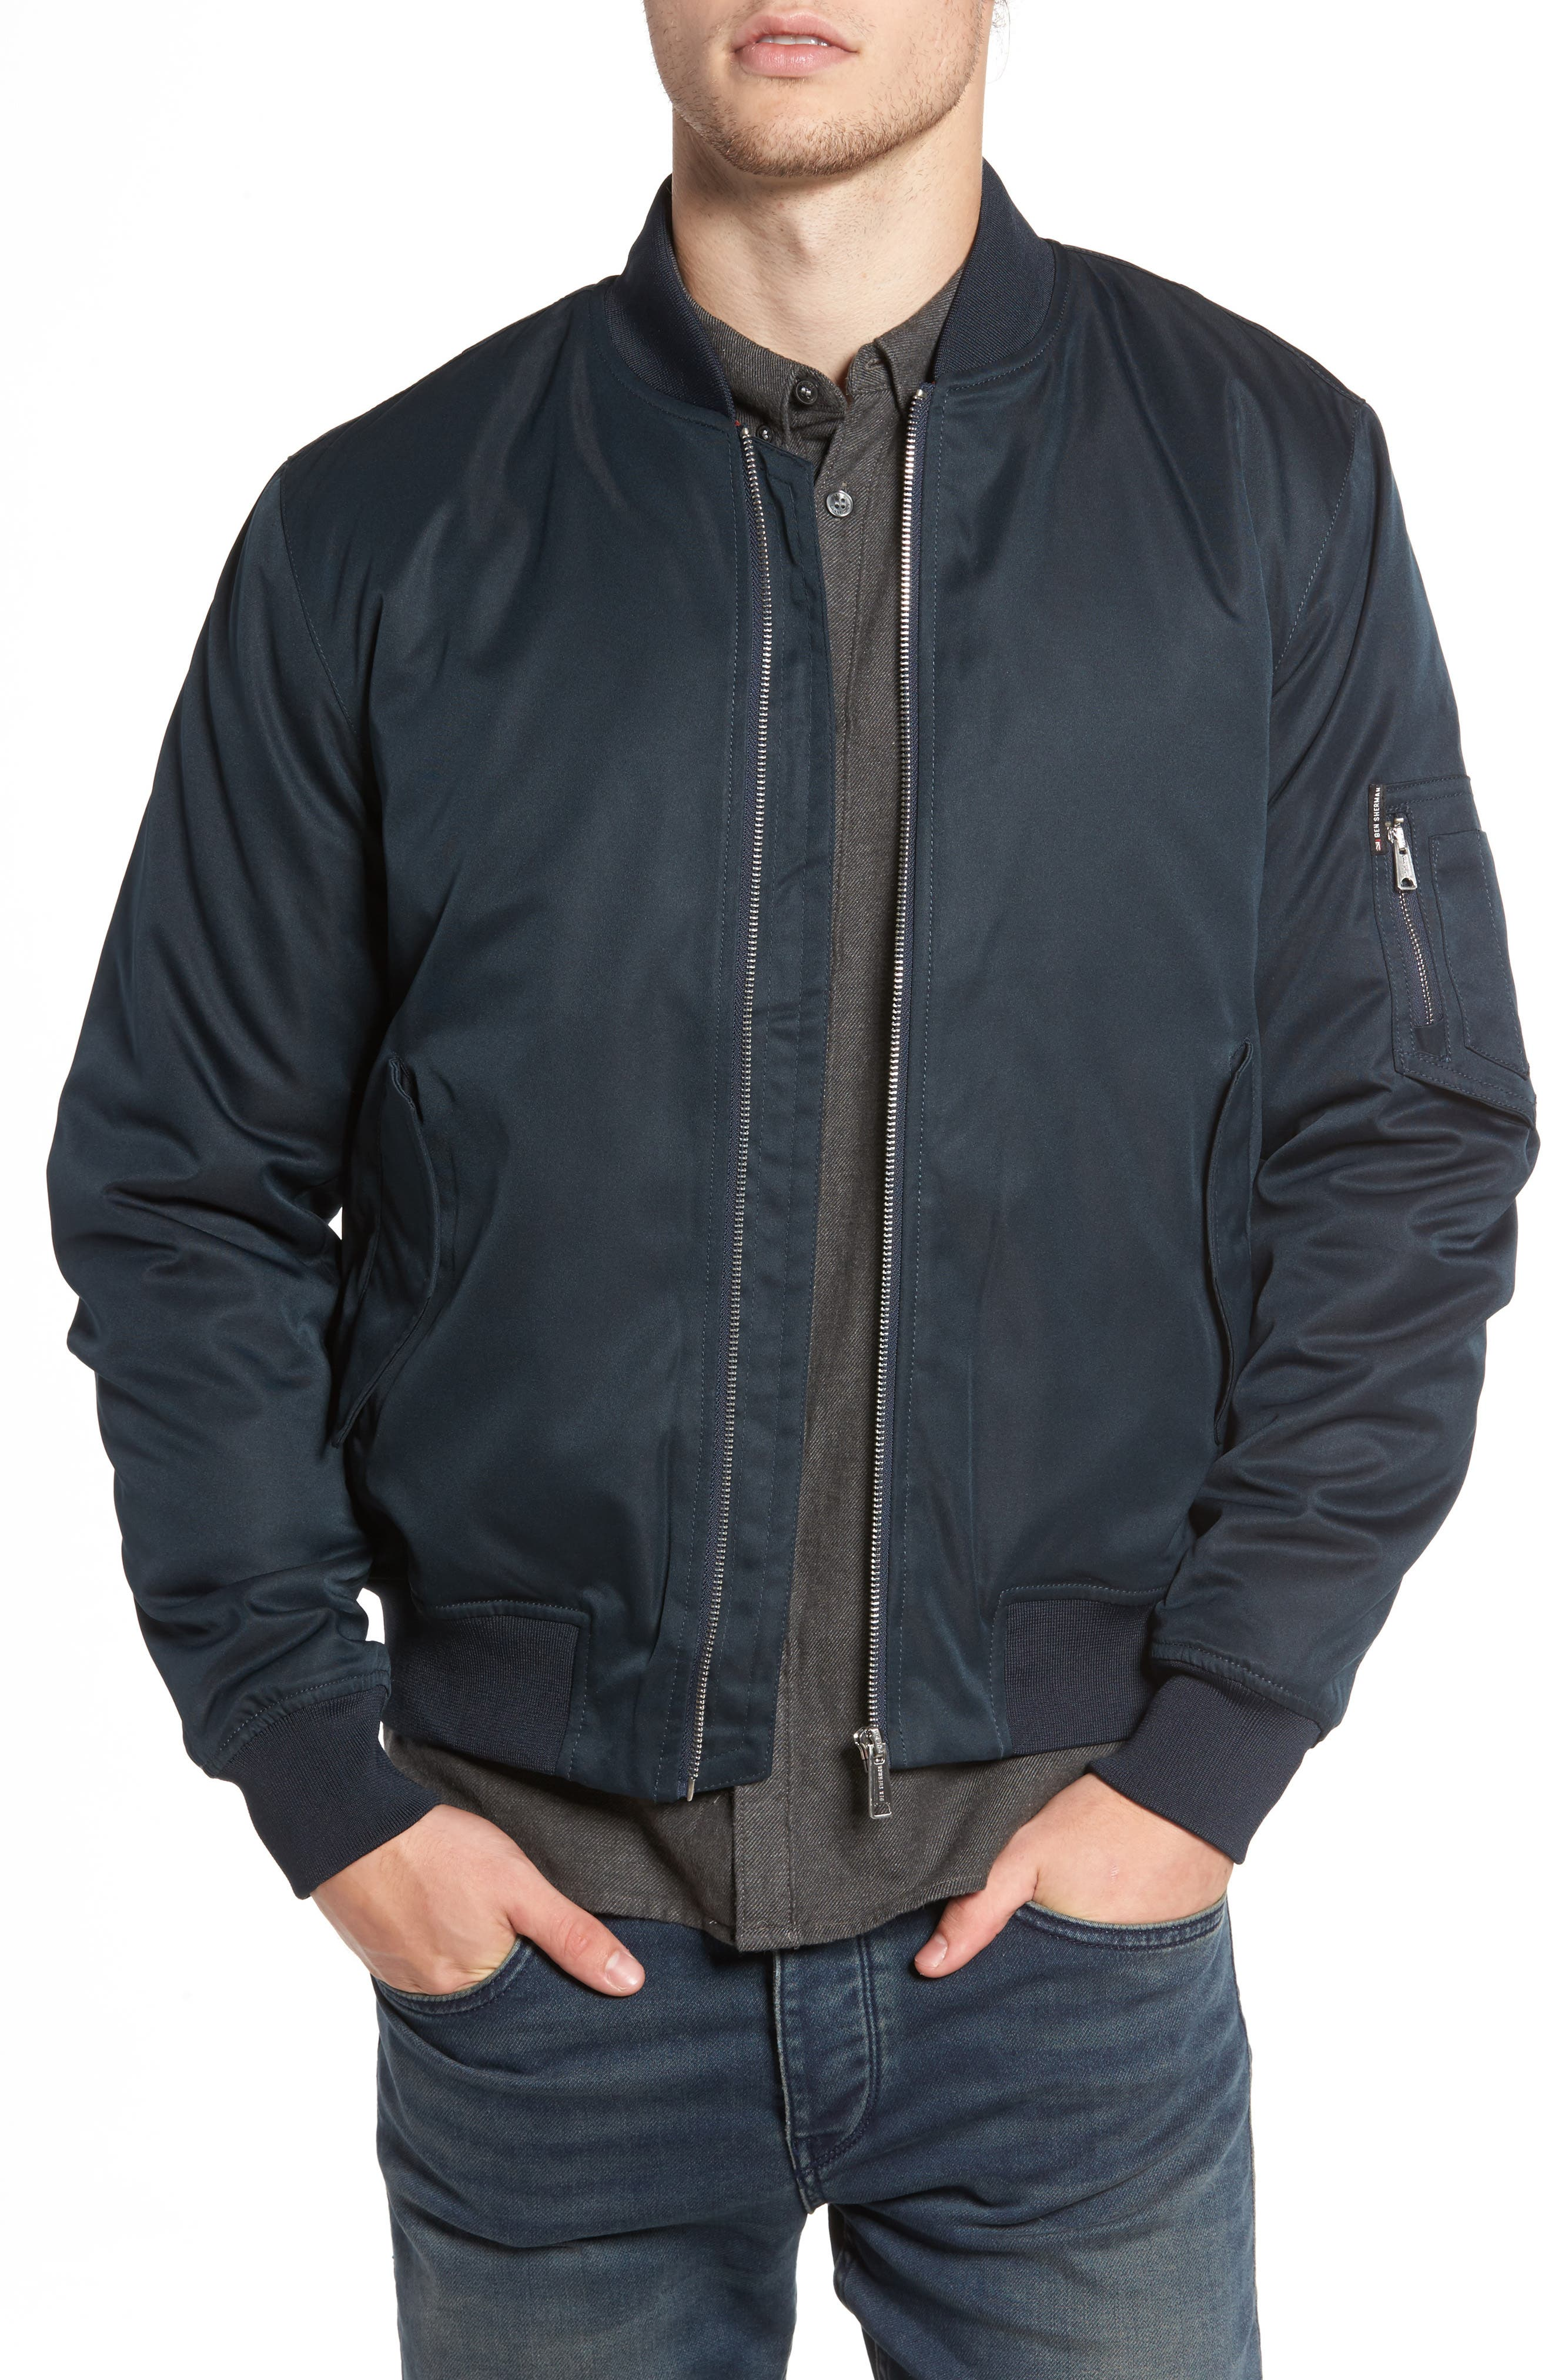 Alternate Image 1 Selected - Ben Sherman MA1 Bomber Jacket